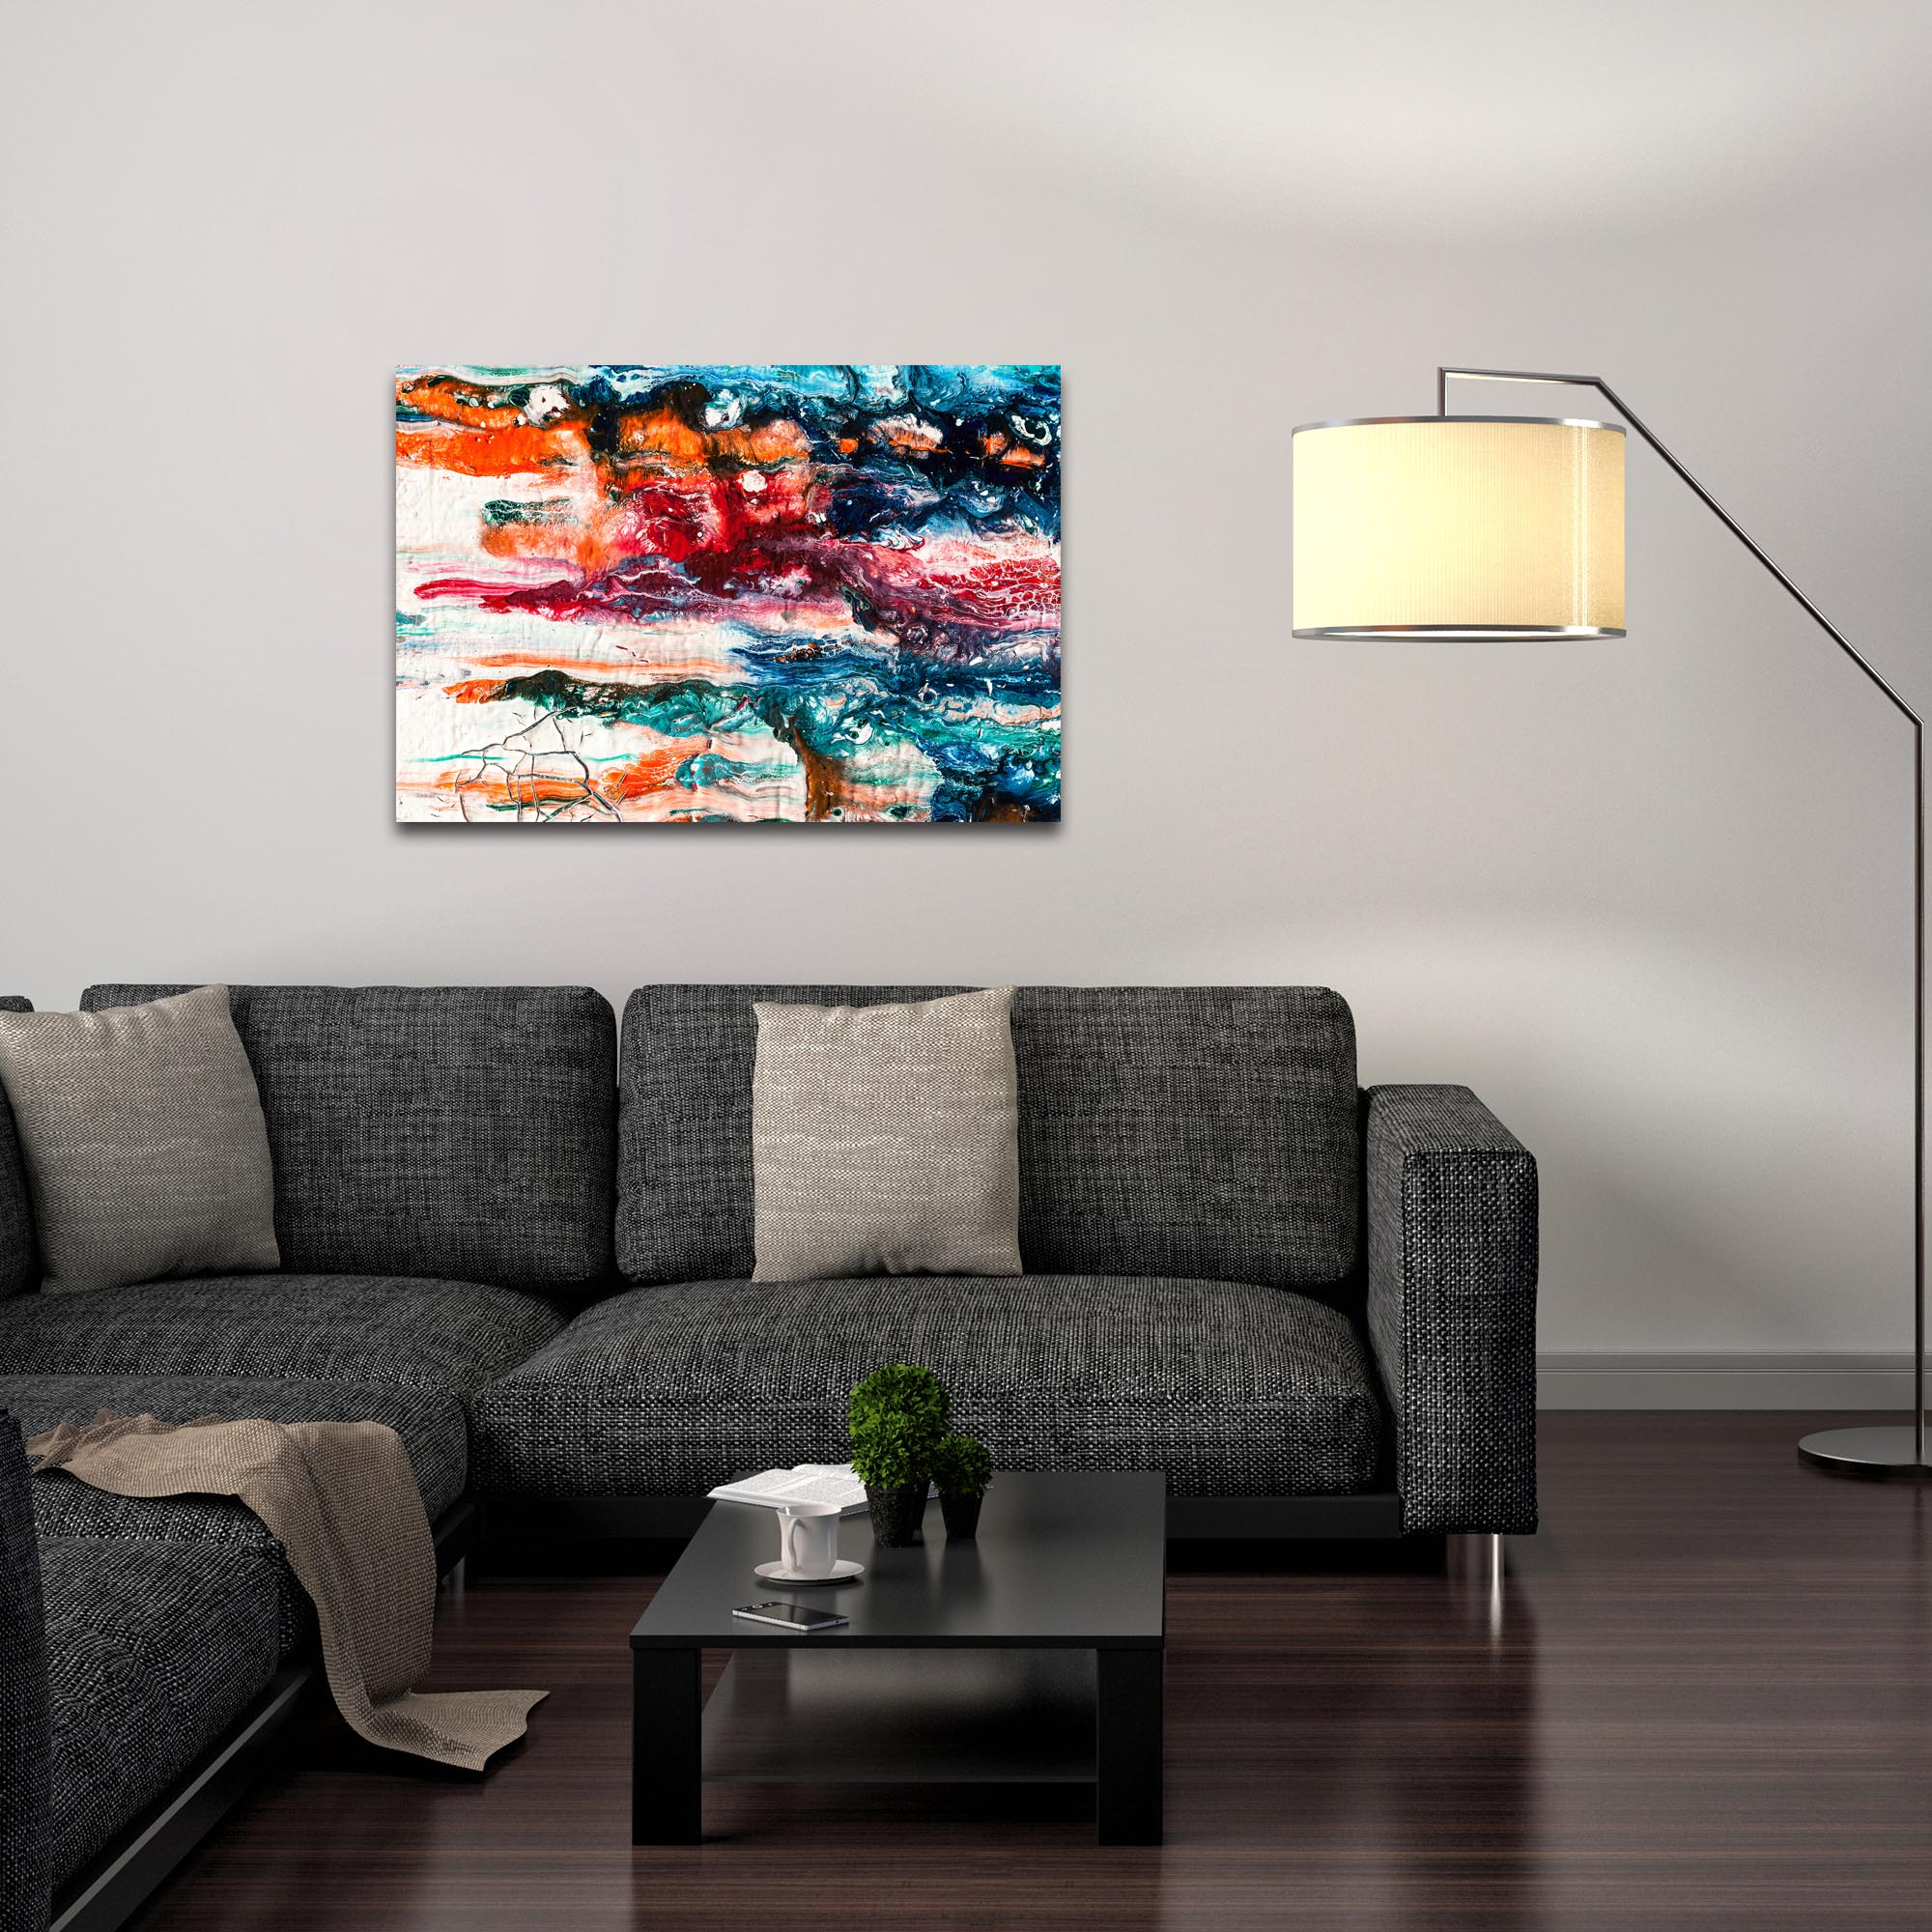 Abstract Wall Art 'Sunset On Her Breath 3' - Colorful Urban Decor on Metal or Plexiglass - Lifestyle View